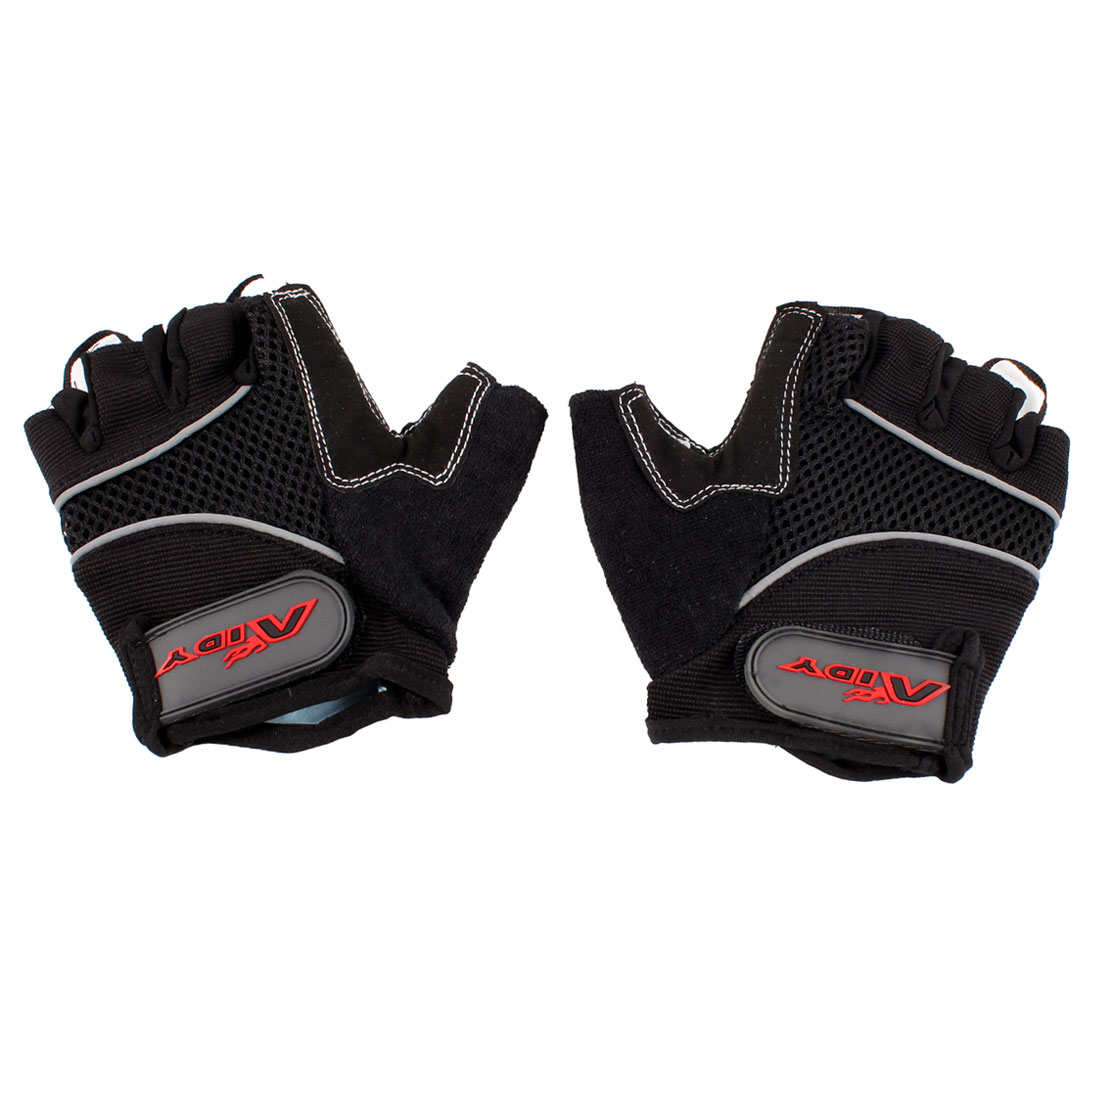 Pair Black Half Finger Skidproof Breathable Sports Cycling Gloves Size S